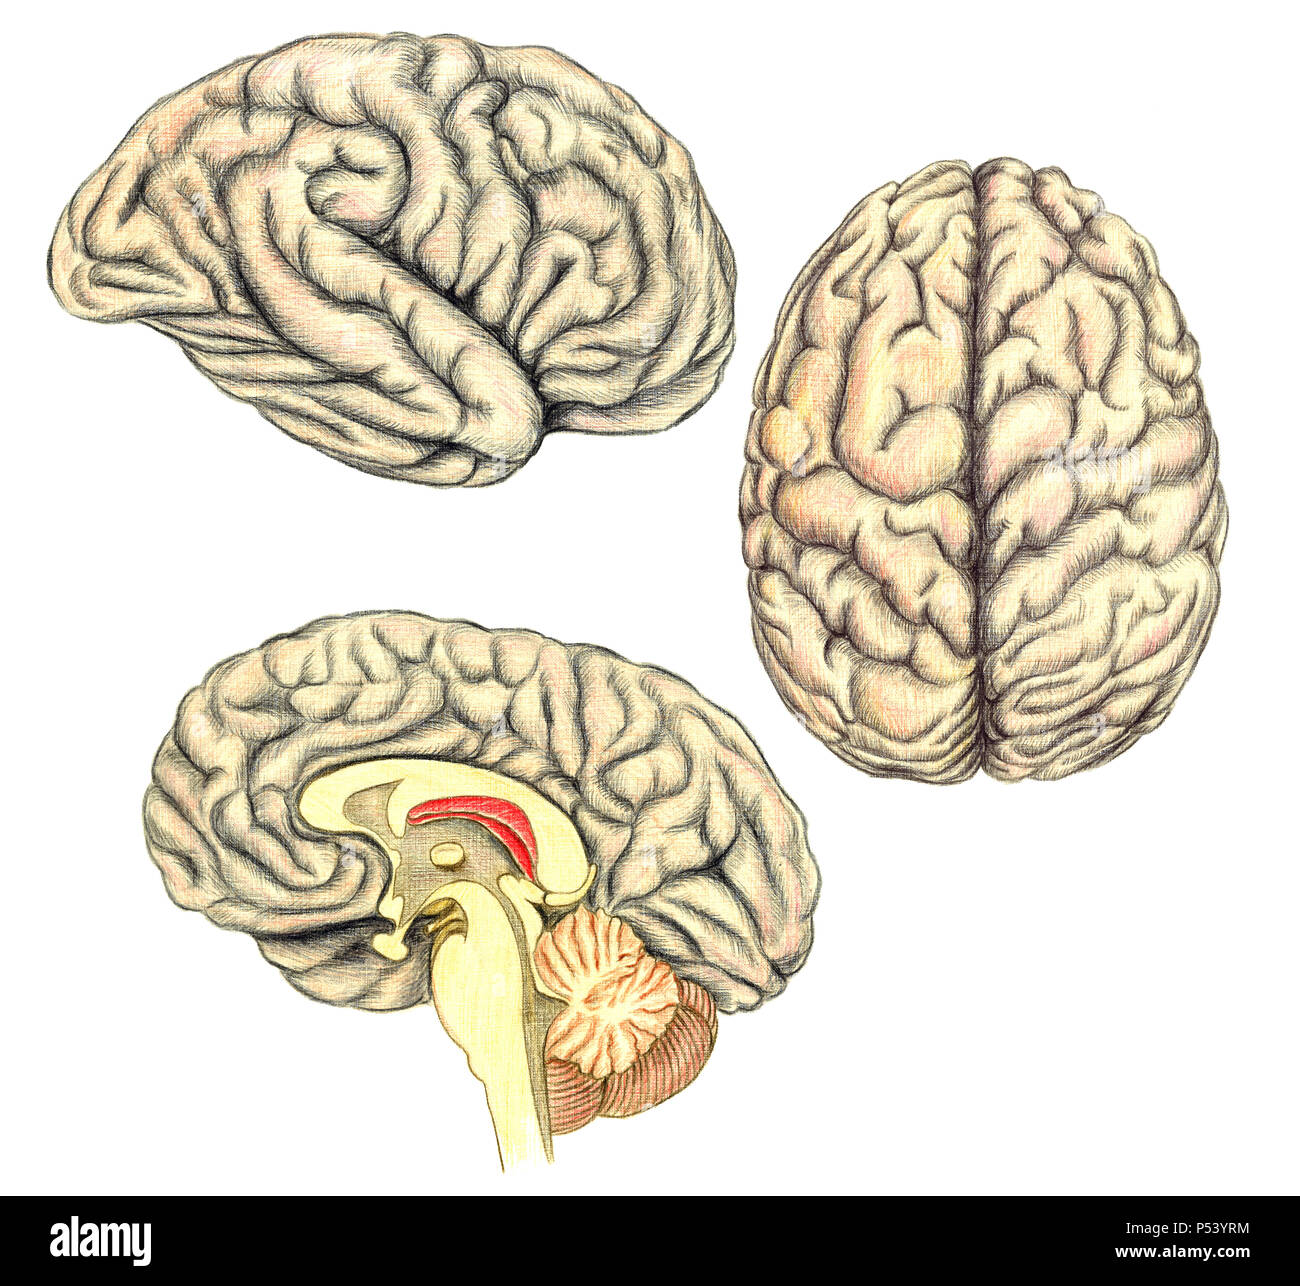 Human brain side diagram stock photos human brain side diagram human brain side view view from above and viewed through a mid line incision ccuart